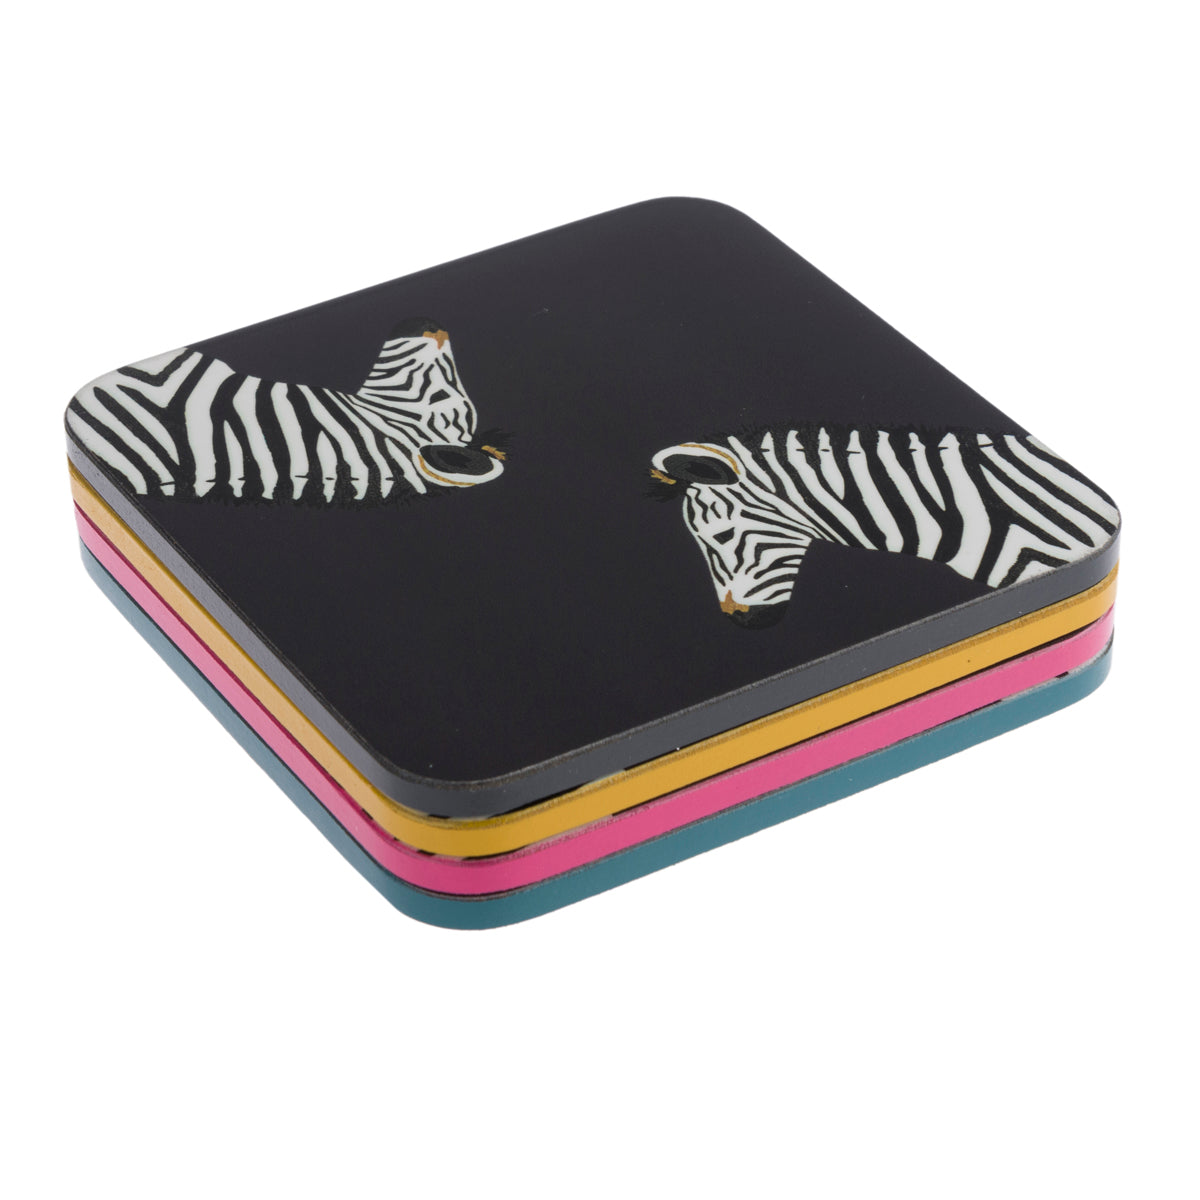 Zebra Coasters (Set of 4)